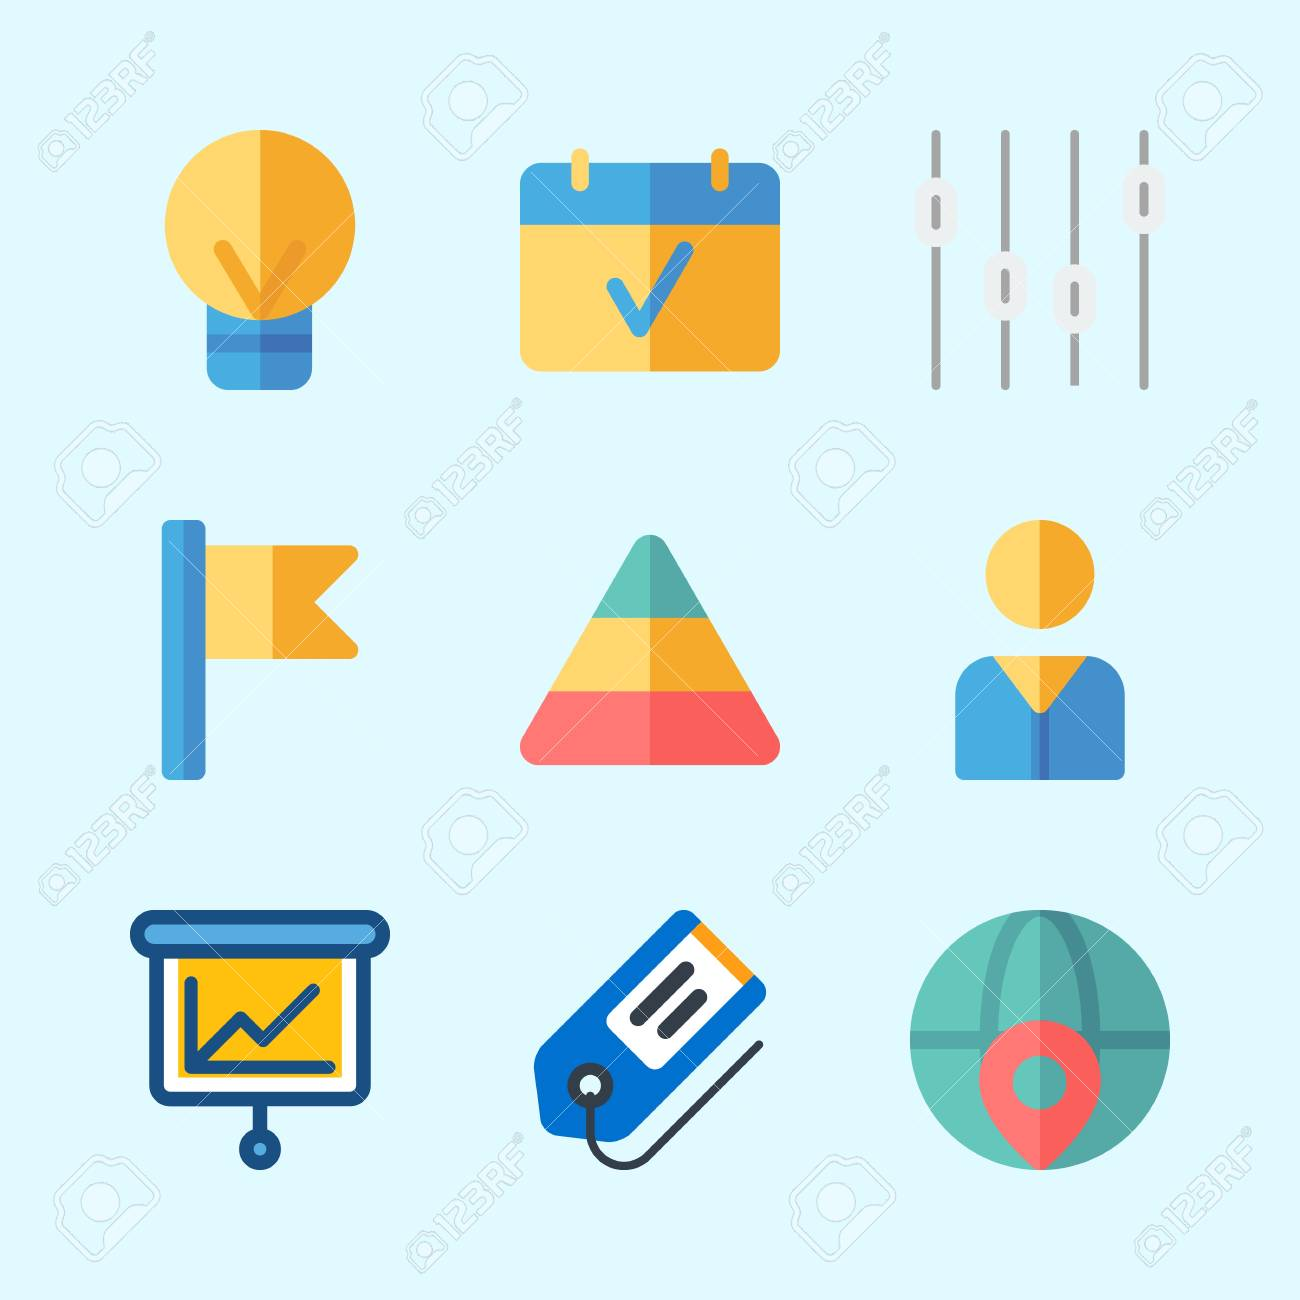 icons about business with user worldwide pyramid presentation